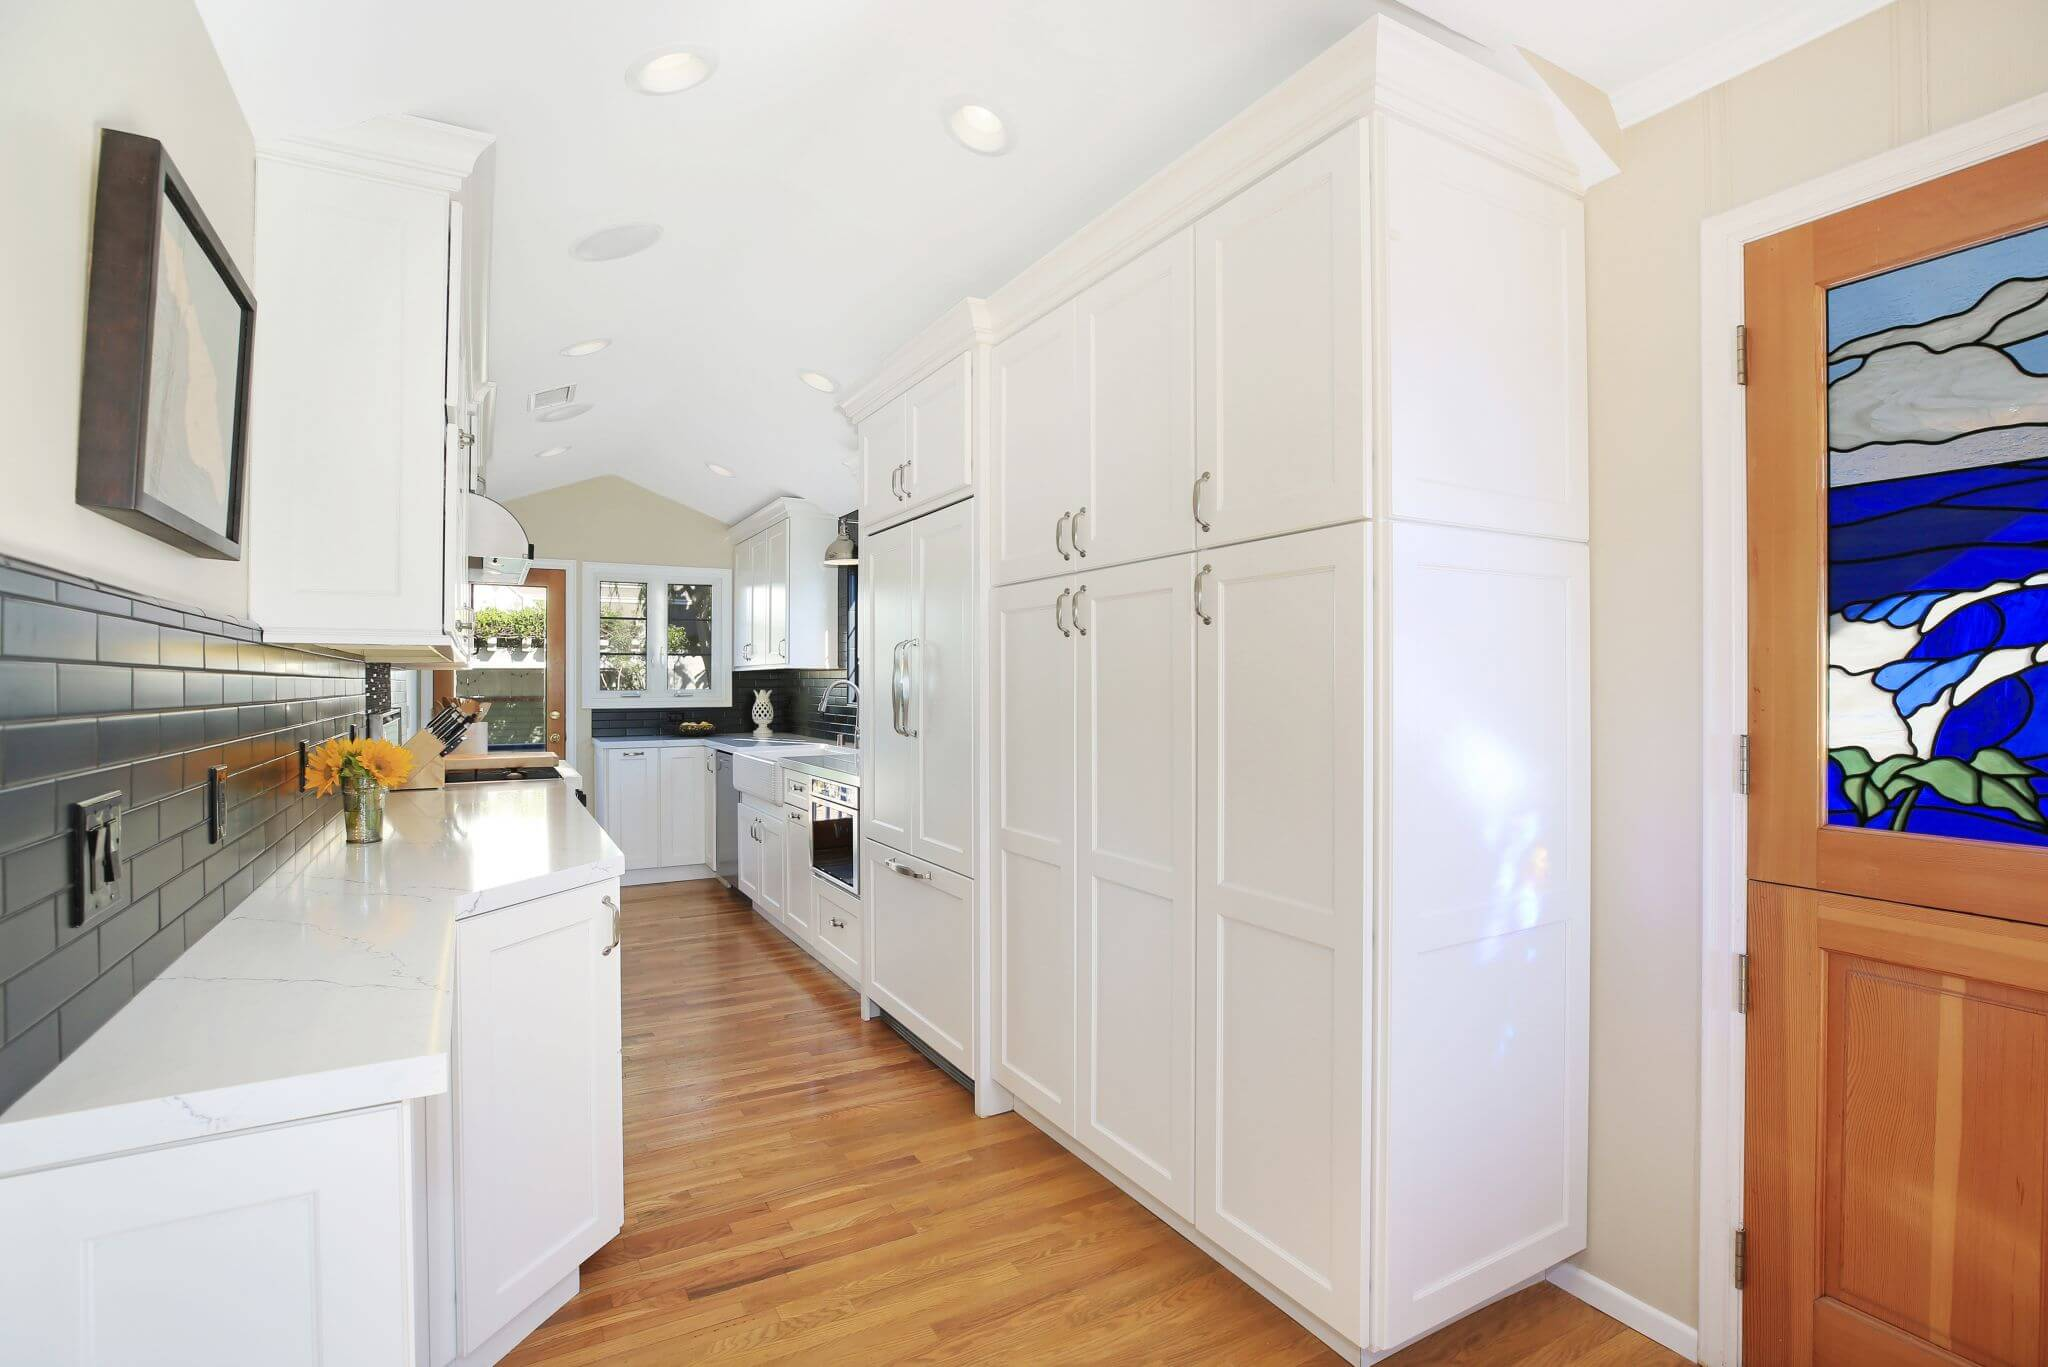 galley style kitchen with simple white cabinets and black design details